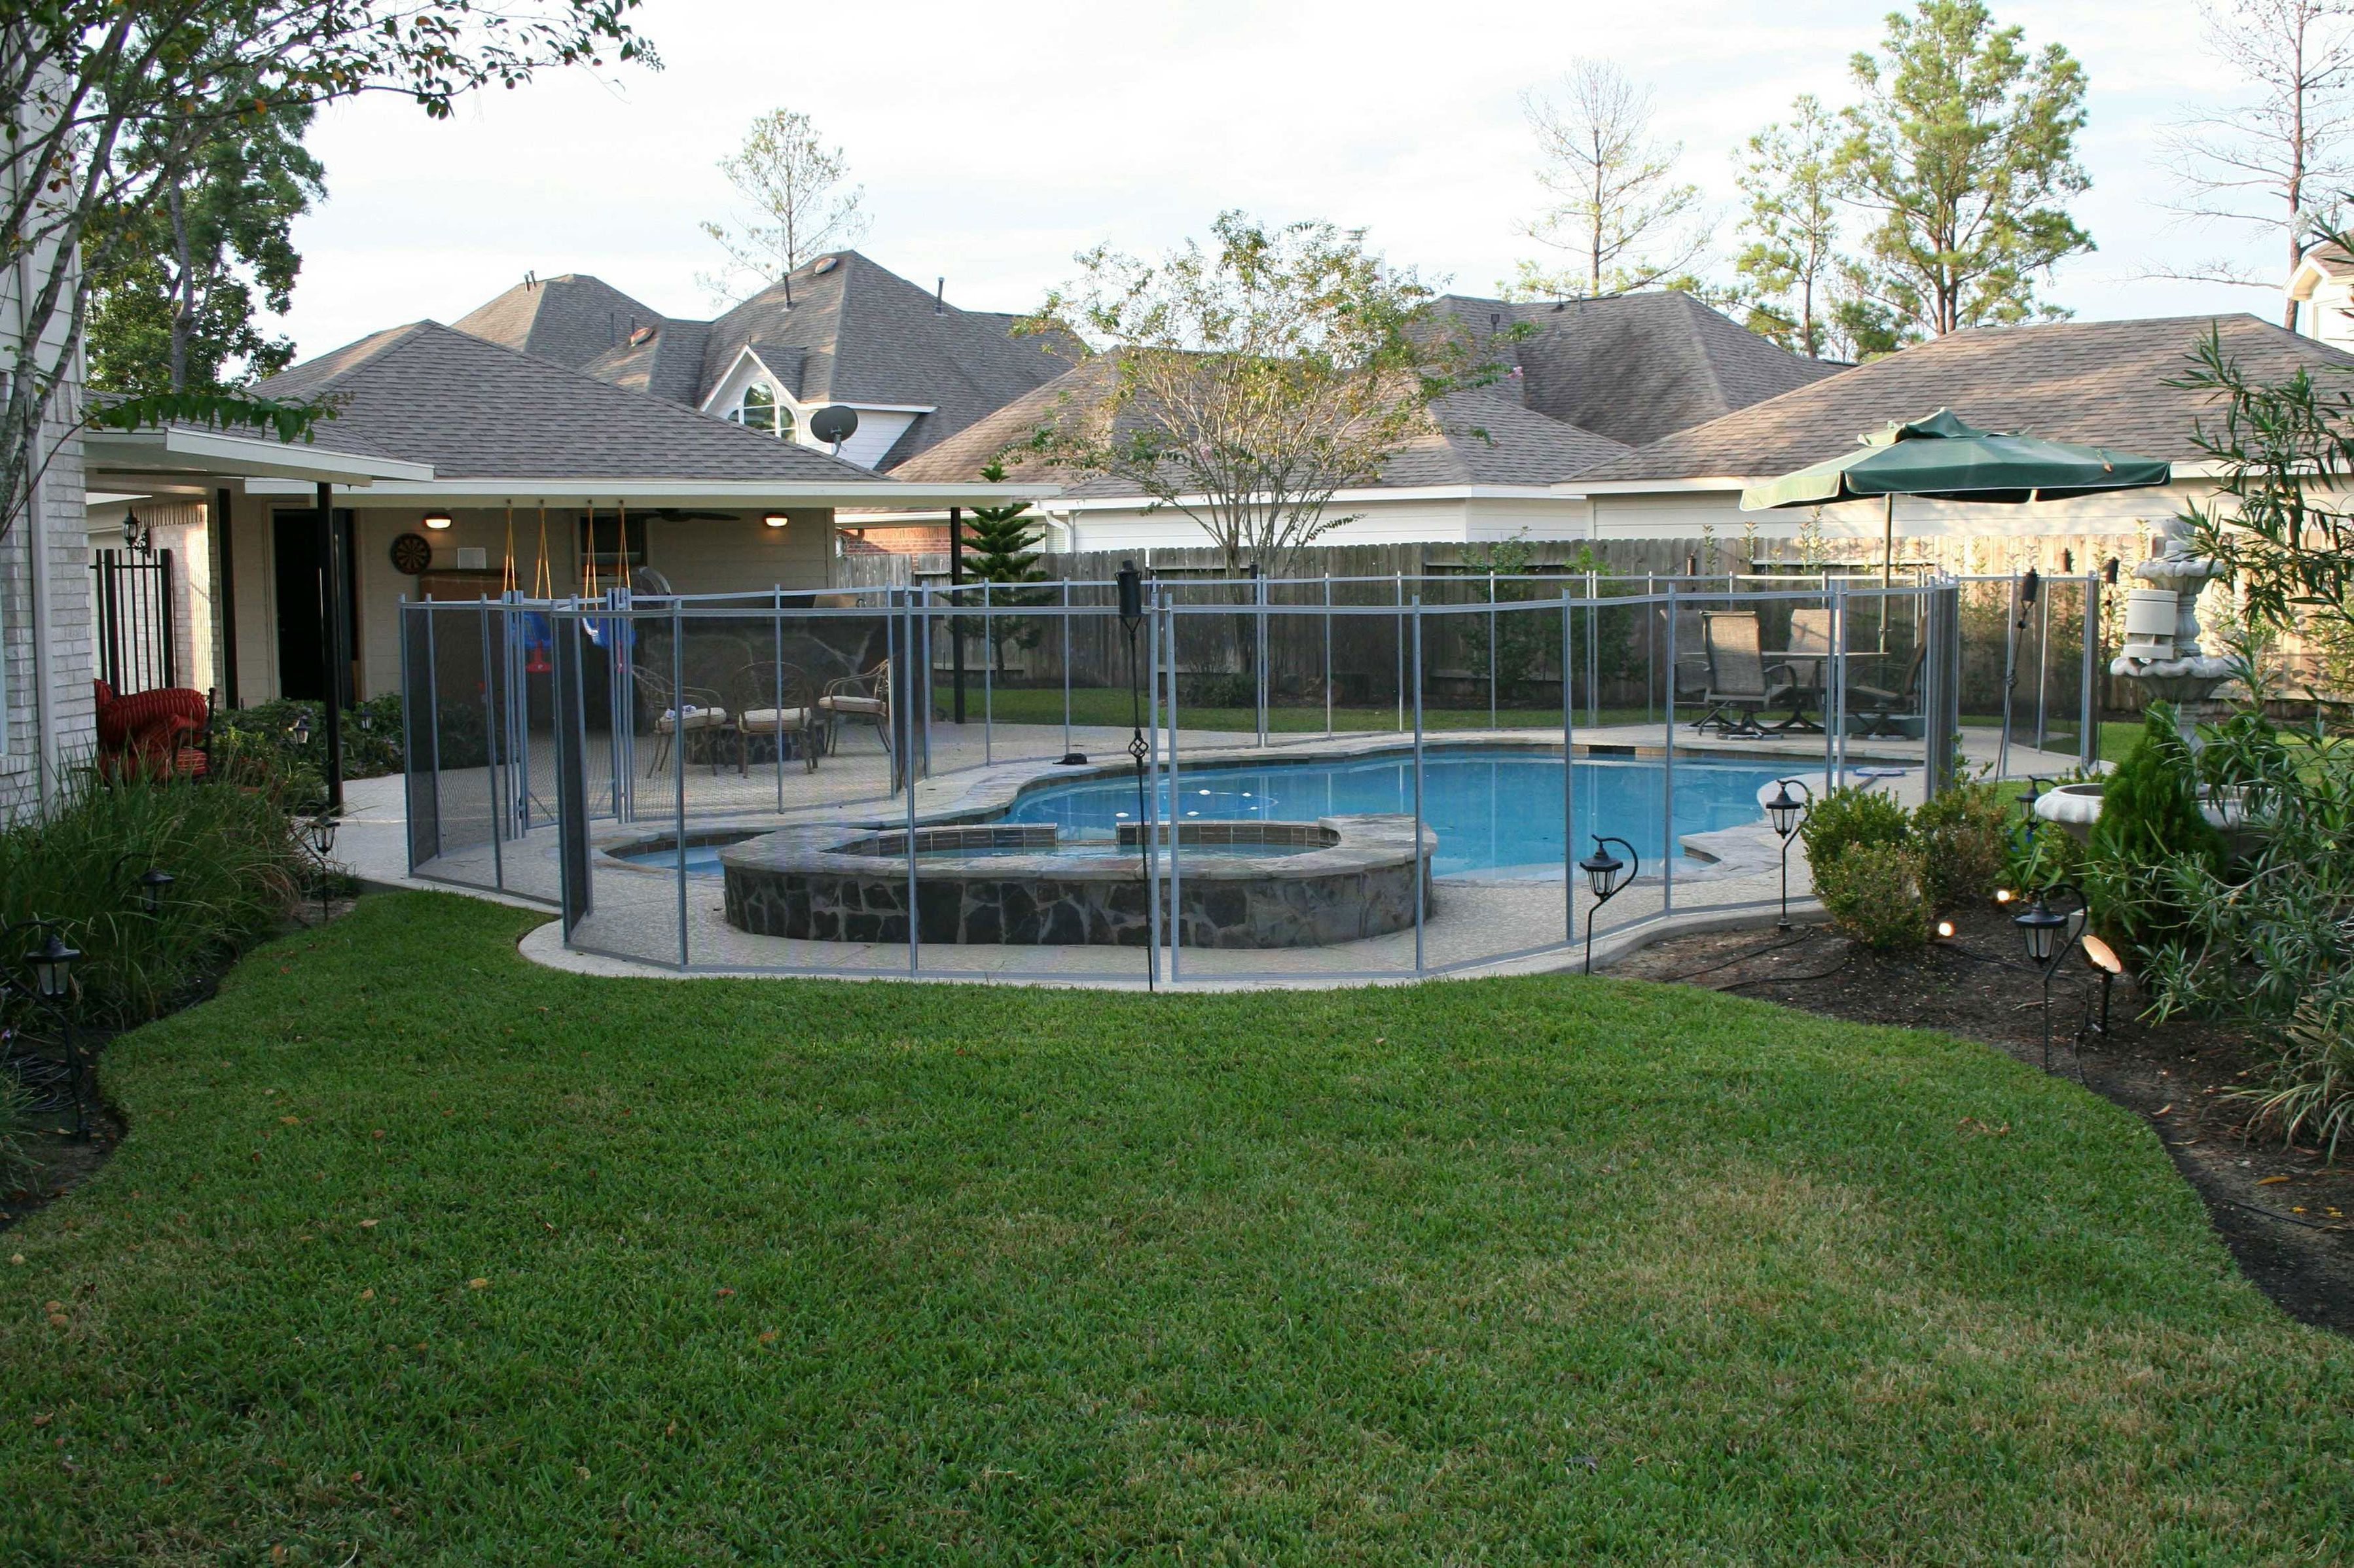 Right Here We Take A Look At 27 Innovative Swimming Pool Fence Pointers For Domestic Residences Sharing Some Resou Pool Fence Backyard Pool Mesh Pool Fence